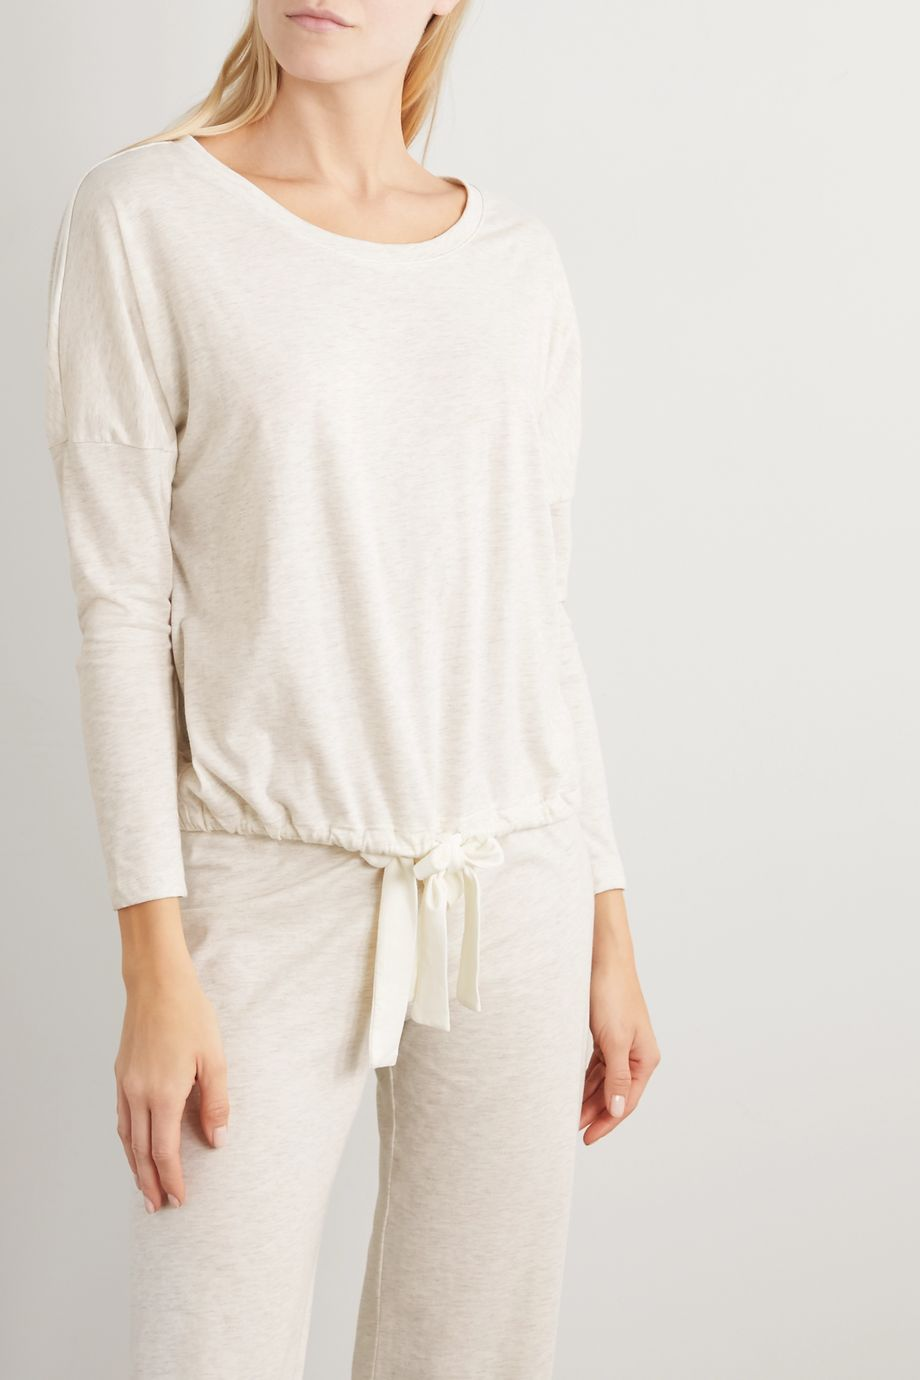 Eberjey Heather cotton-blend jersey pajama top